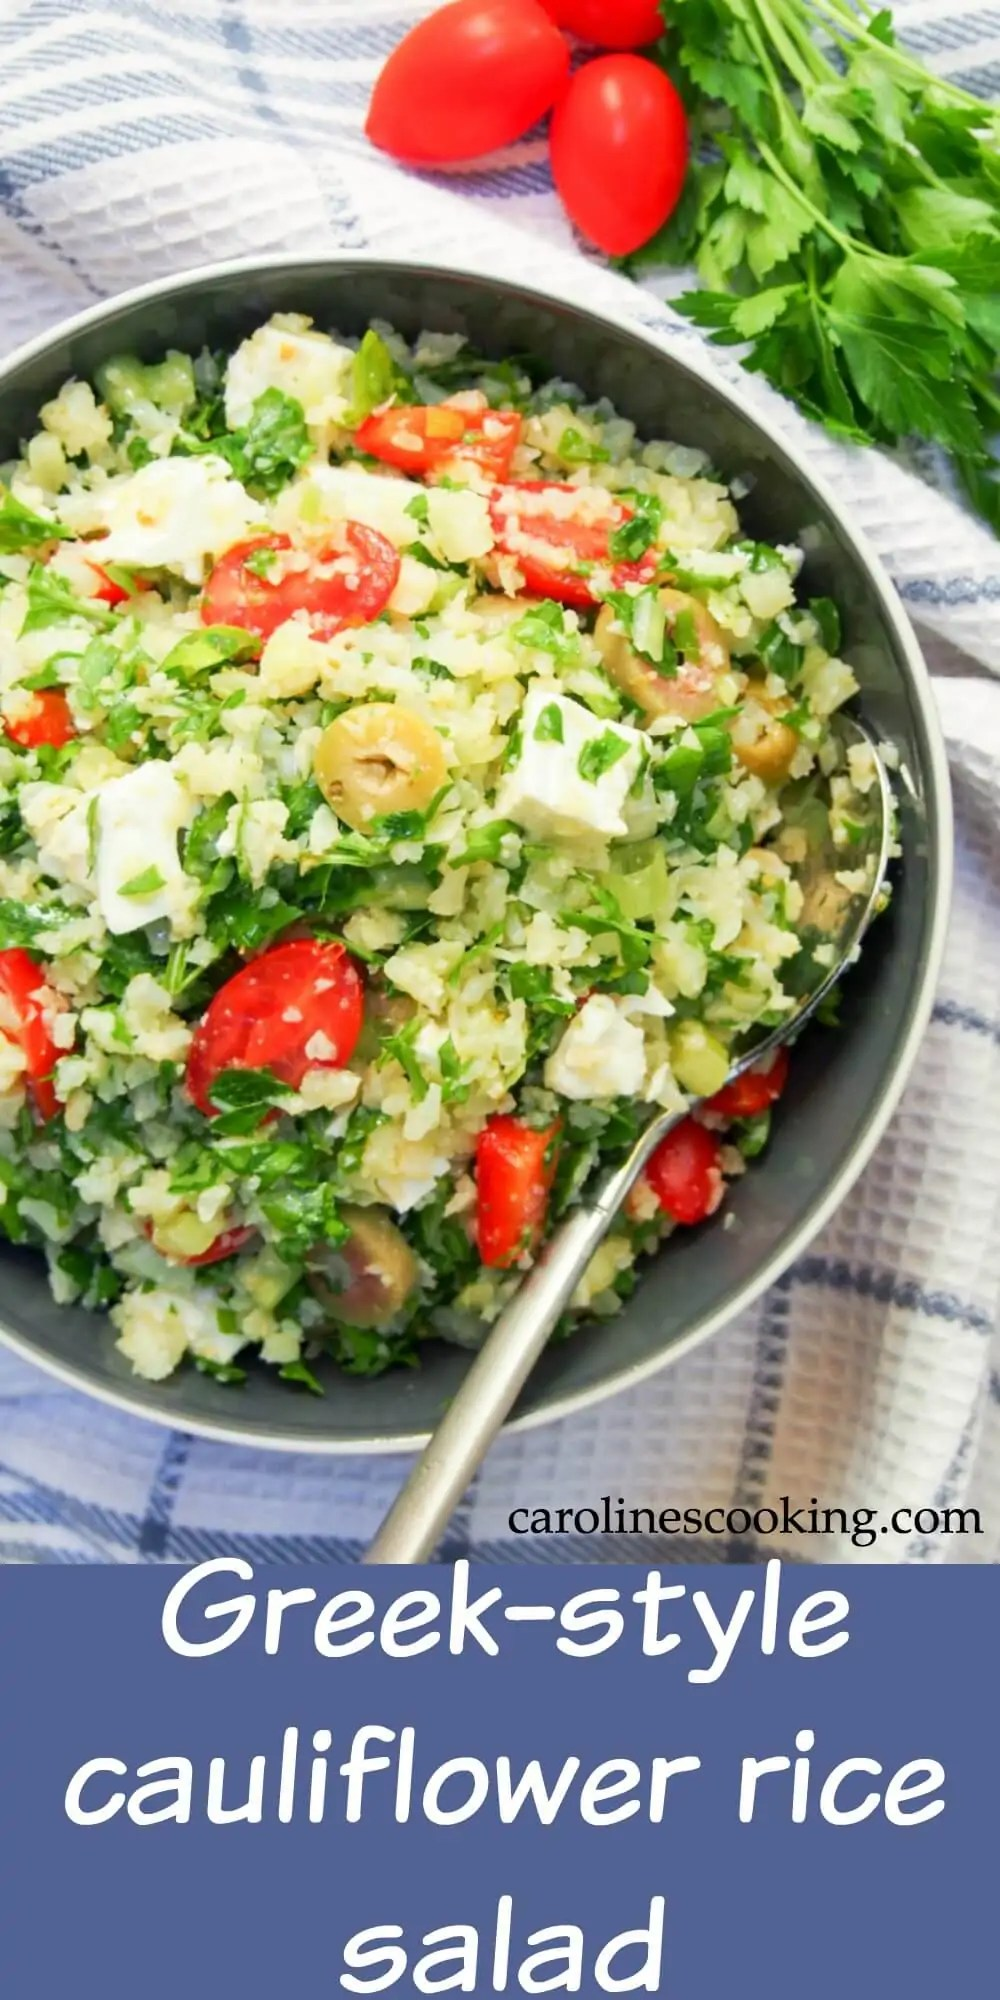 This Greek-style cauliflower rice salad is low on carbs and high on taste - full of Mediterranean flavors and so easy to make. It also packs well so is perfect for a picnic, potluck or lunchbox. #salad #lowcarb #cauliflowerrice #glutenfree